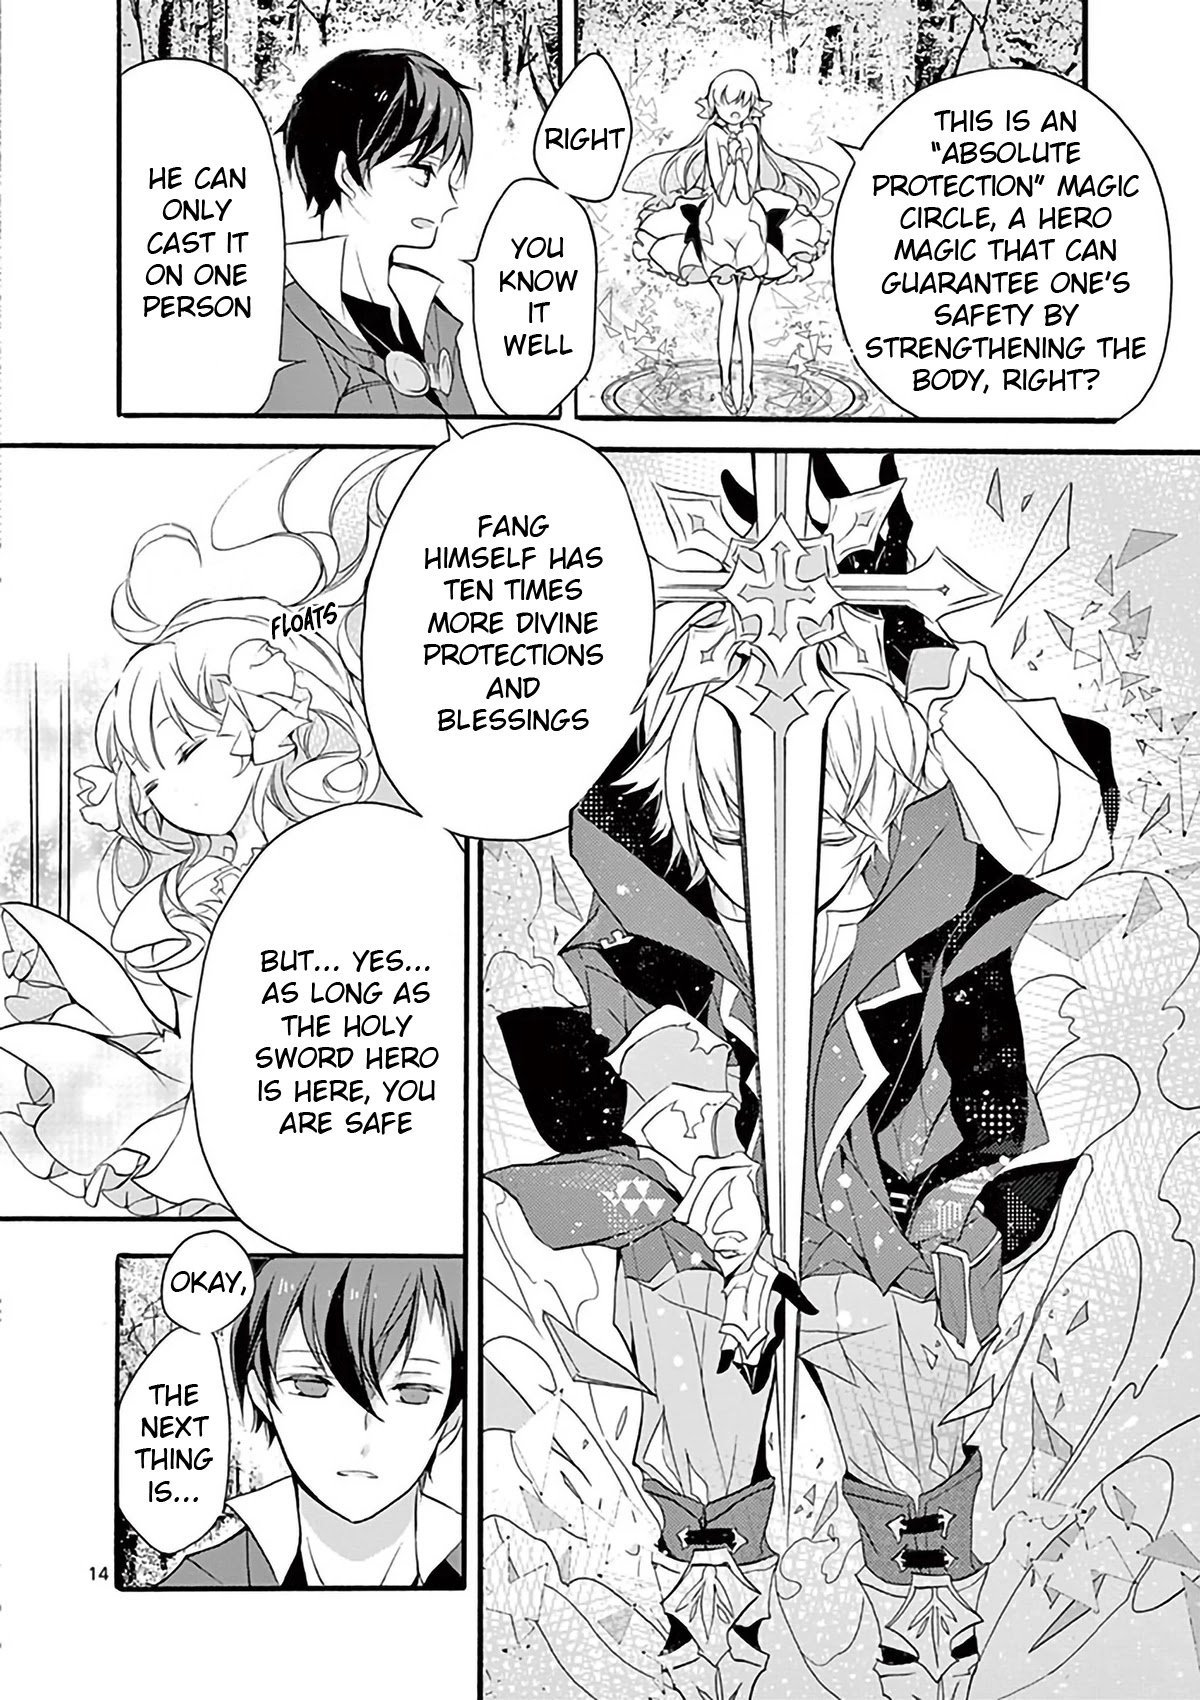 Manga From The Strongest Job of Dragon Knight, To The Beginner Job Carrier, Somehow, I Am Dependent On The Heroes - Chapter 3 Page 14